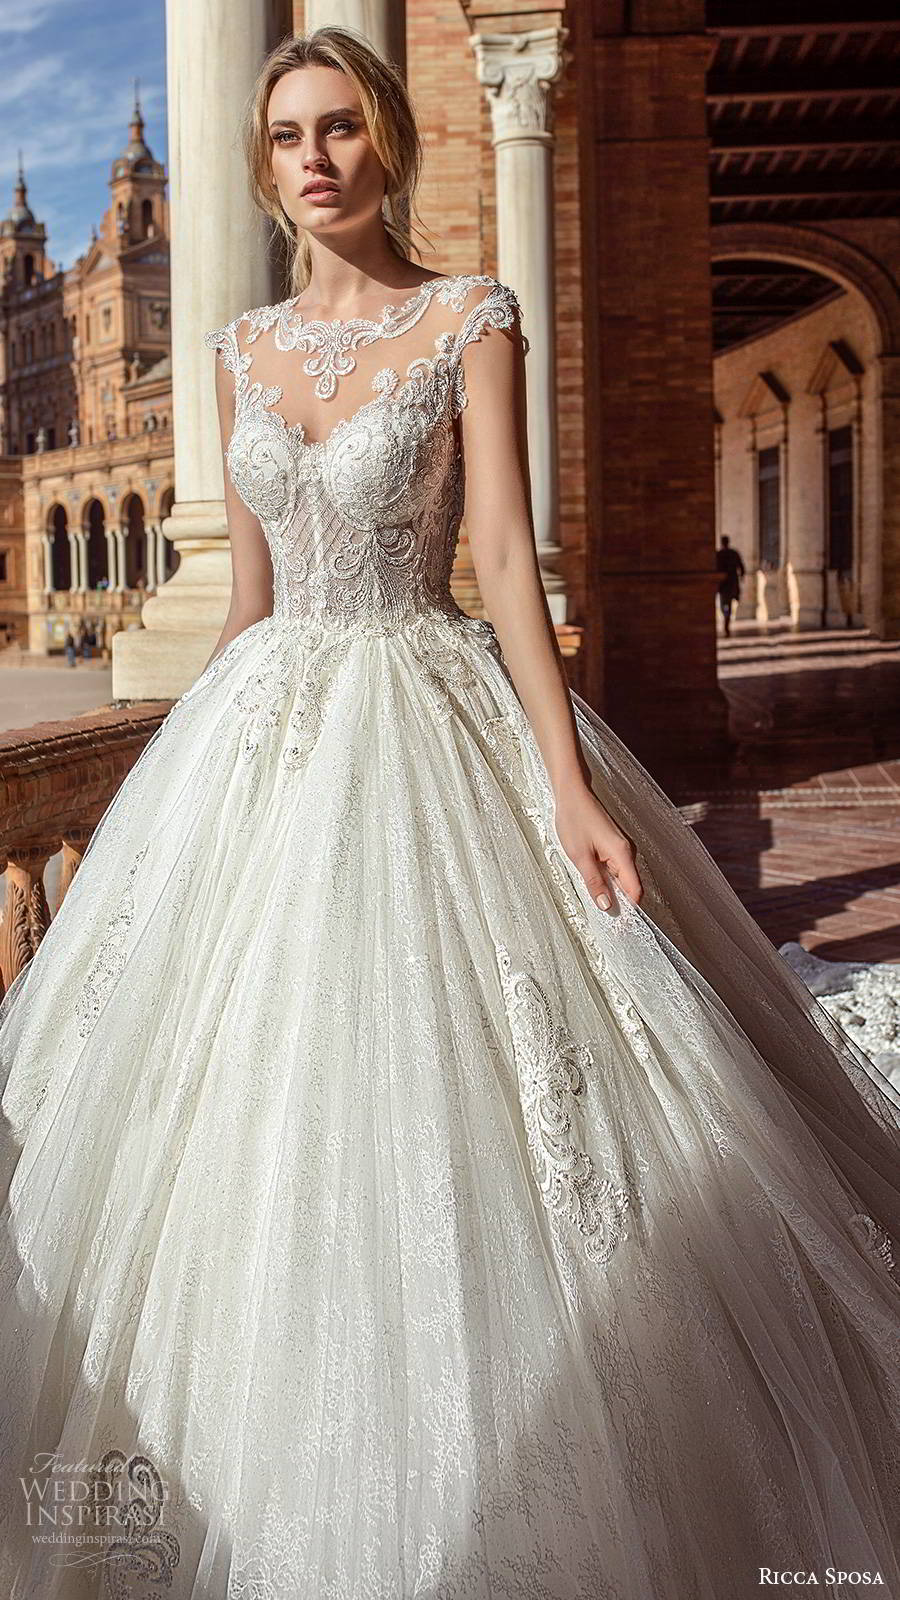 ricca sposa 2019 bridal illusion cap sleeves jewel neckline embellished bodice romantic princess a line ball gown wedding dress illusion back cathedral train (3) zv